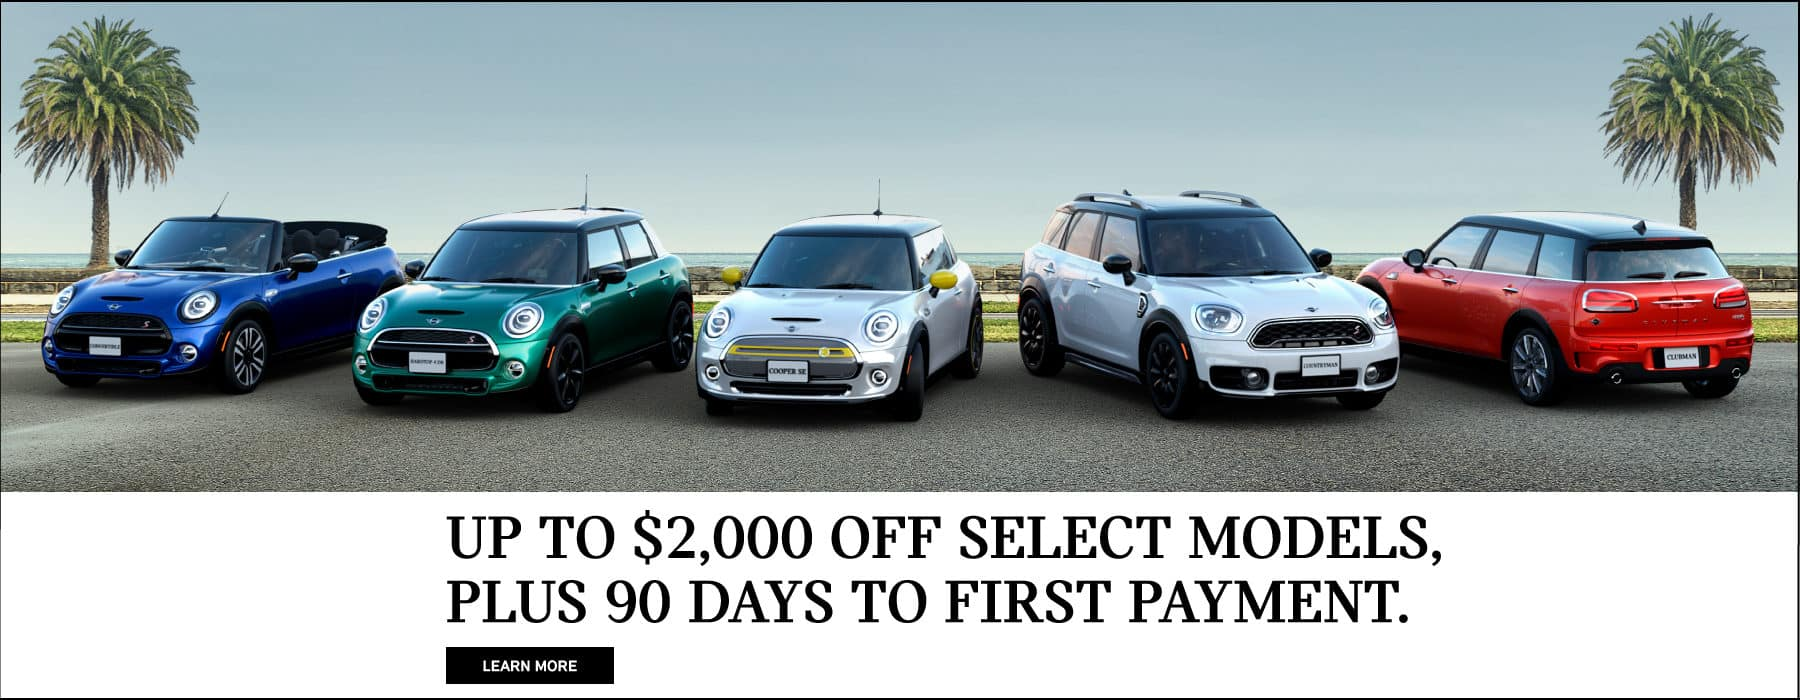 UP TO $2000 OFF SELECT MODELS, PLUS 90 DAYS TO FIRST PAYMENT